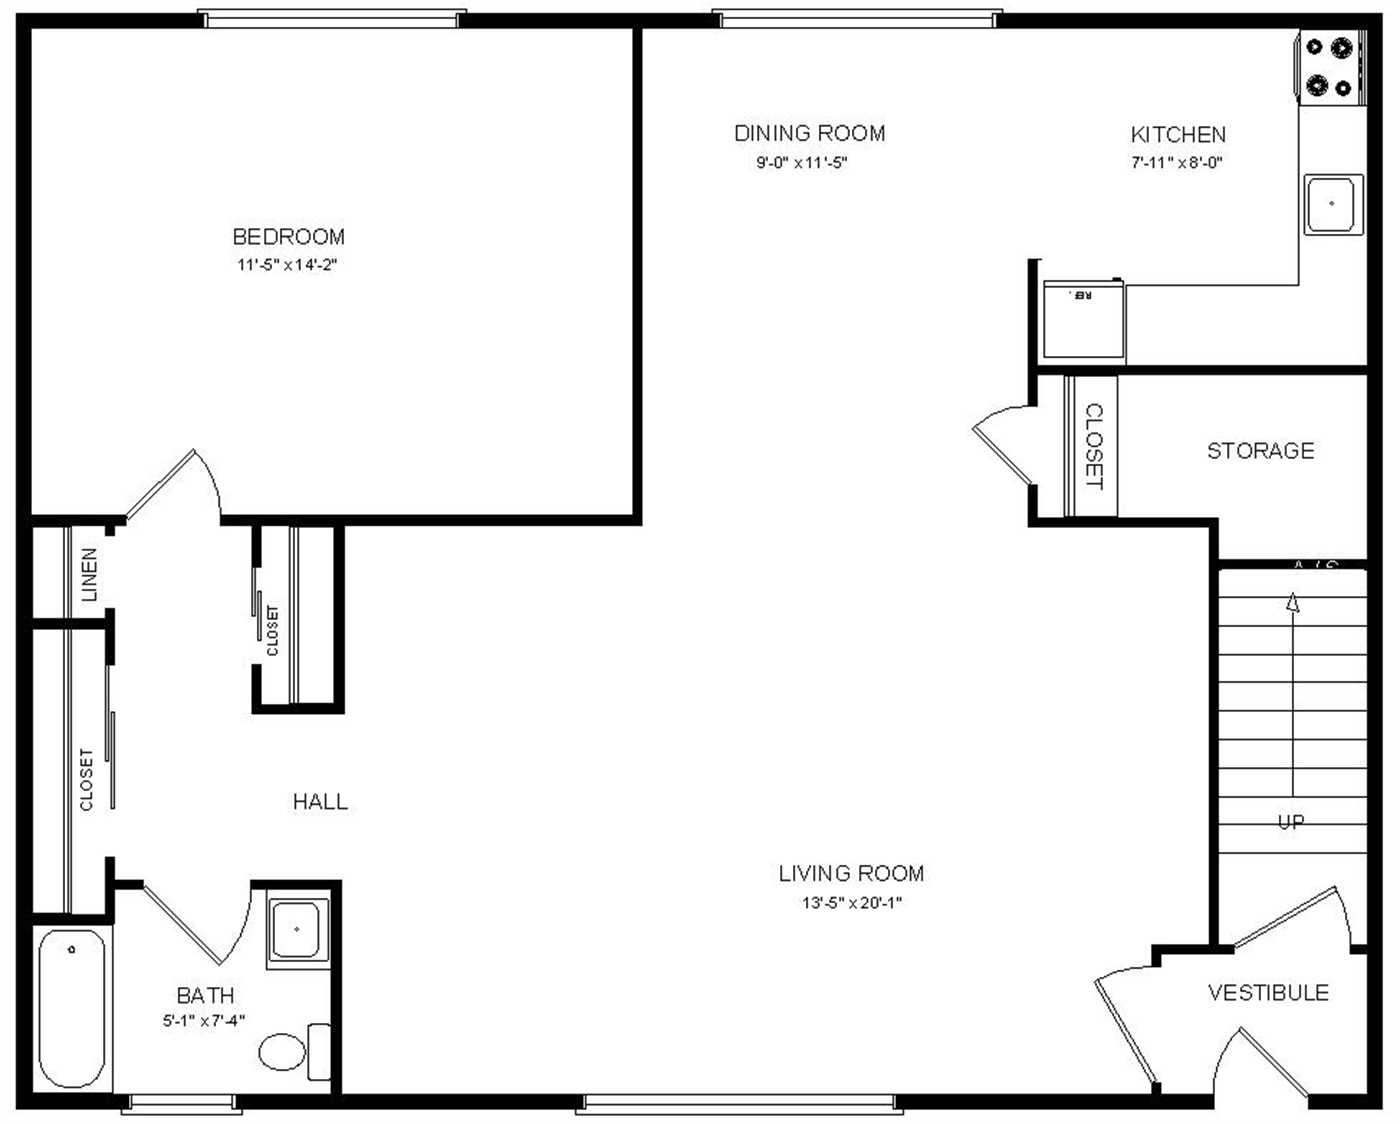 20 Unique Free Floor Plan Templates House Plans 6351